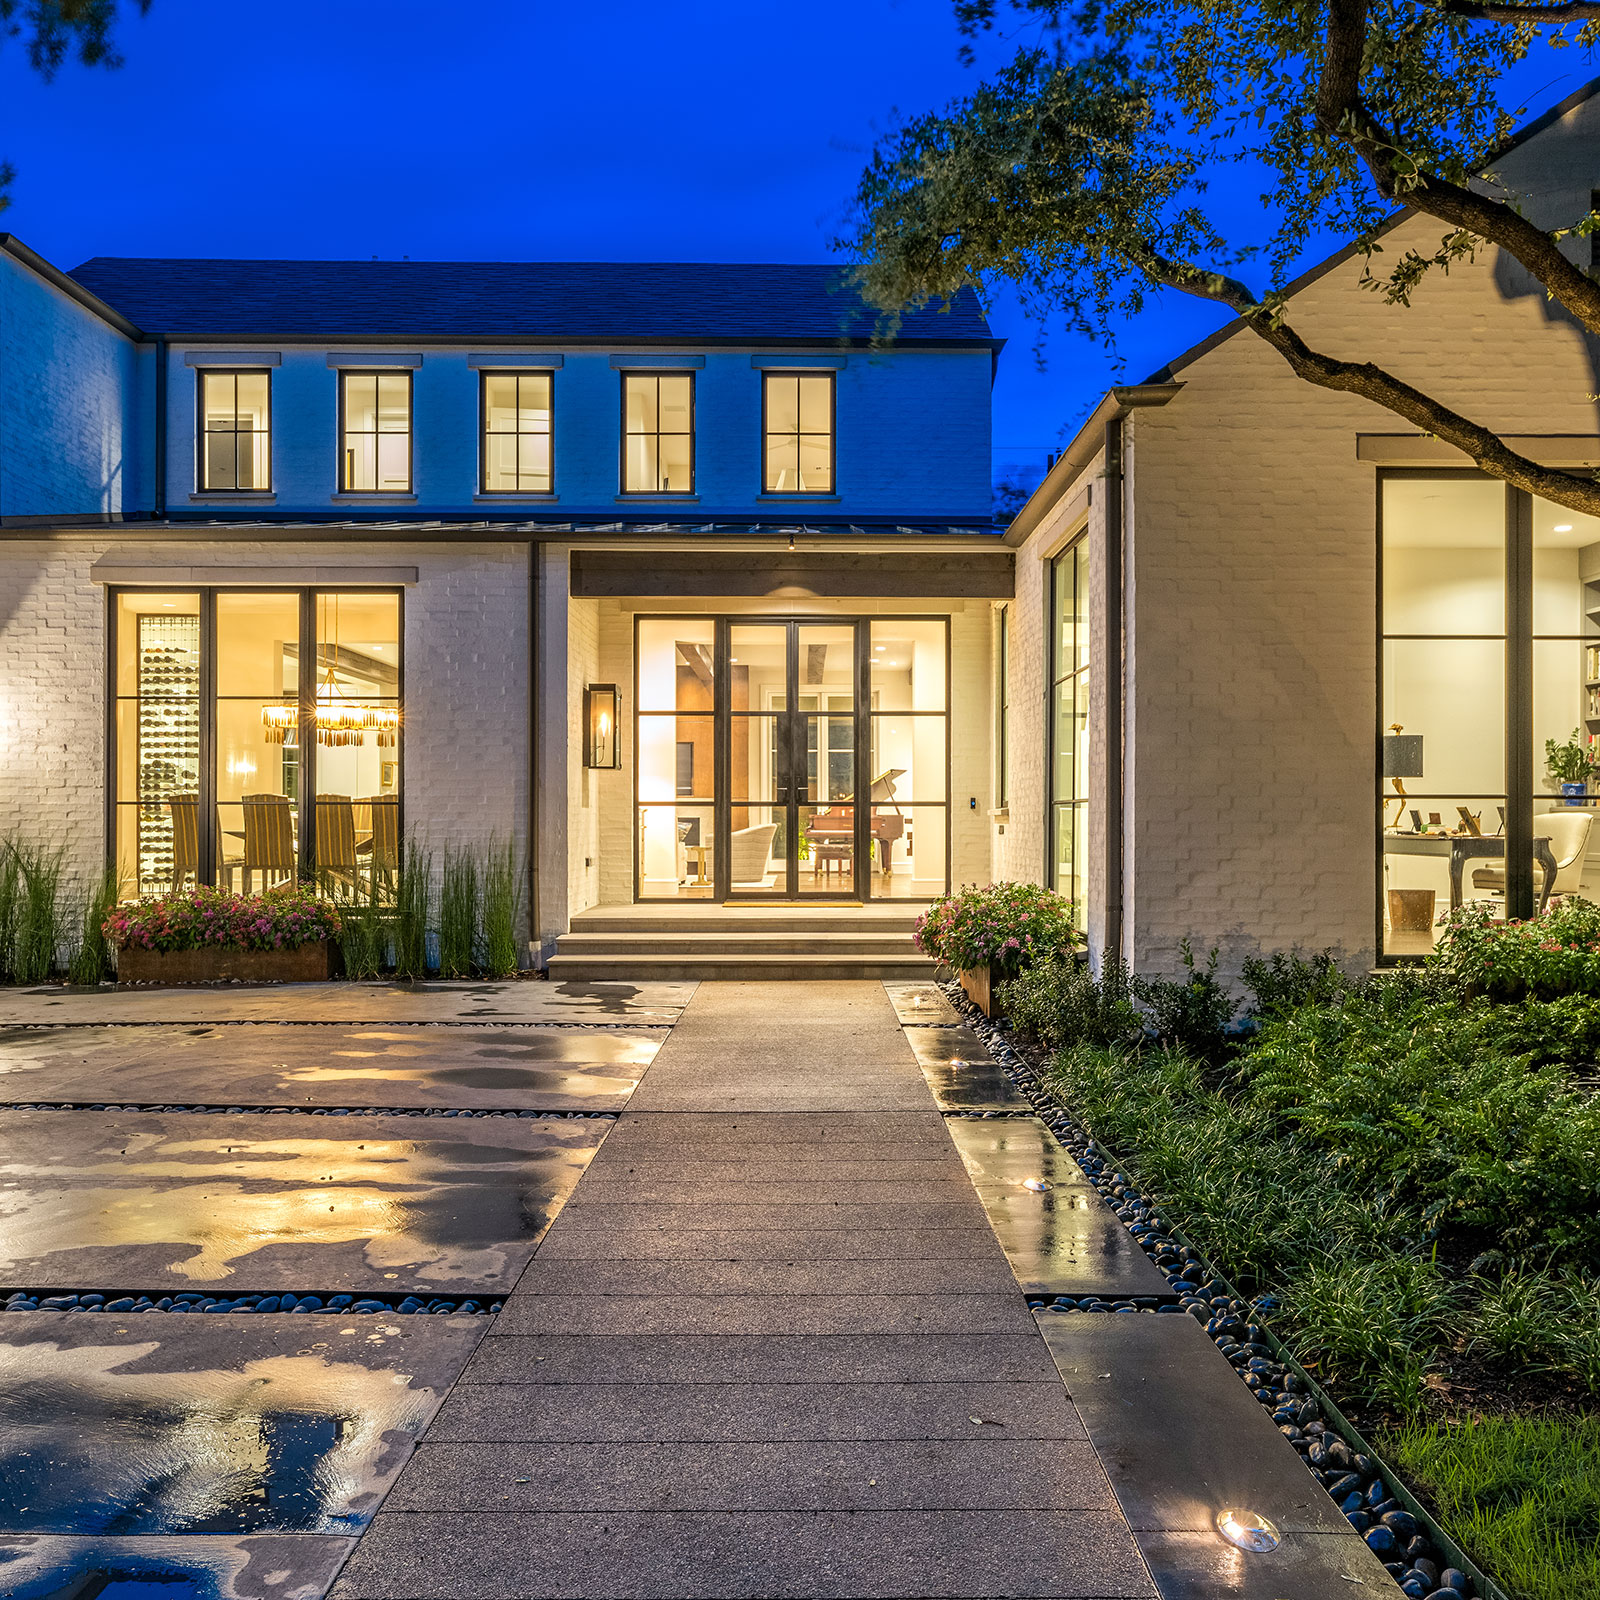 ddla-design-pemberton-modern-front-entry-walk-evening.jpg